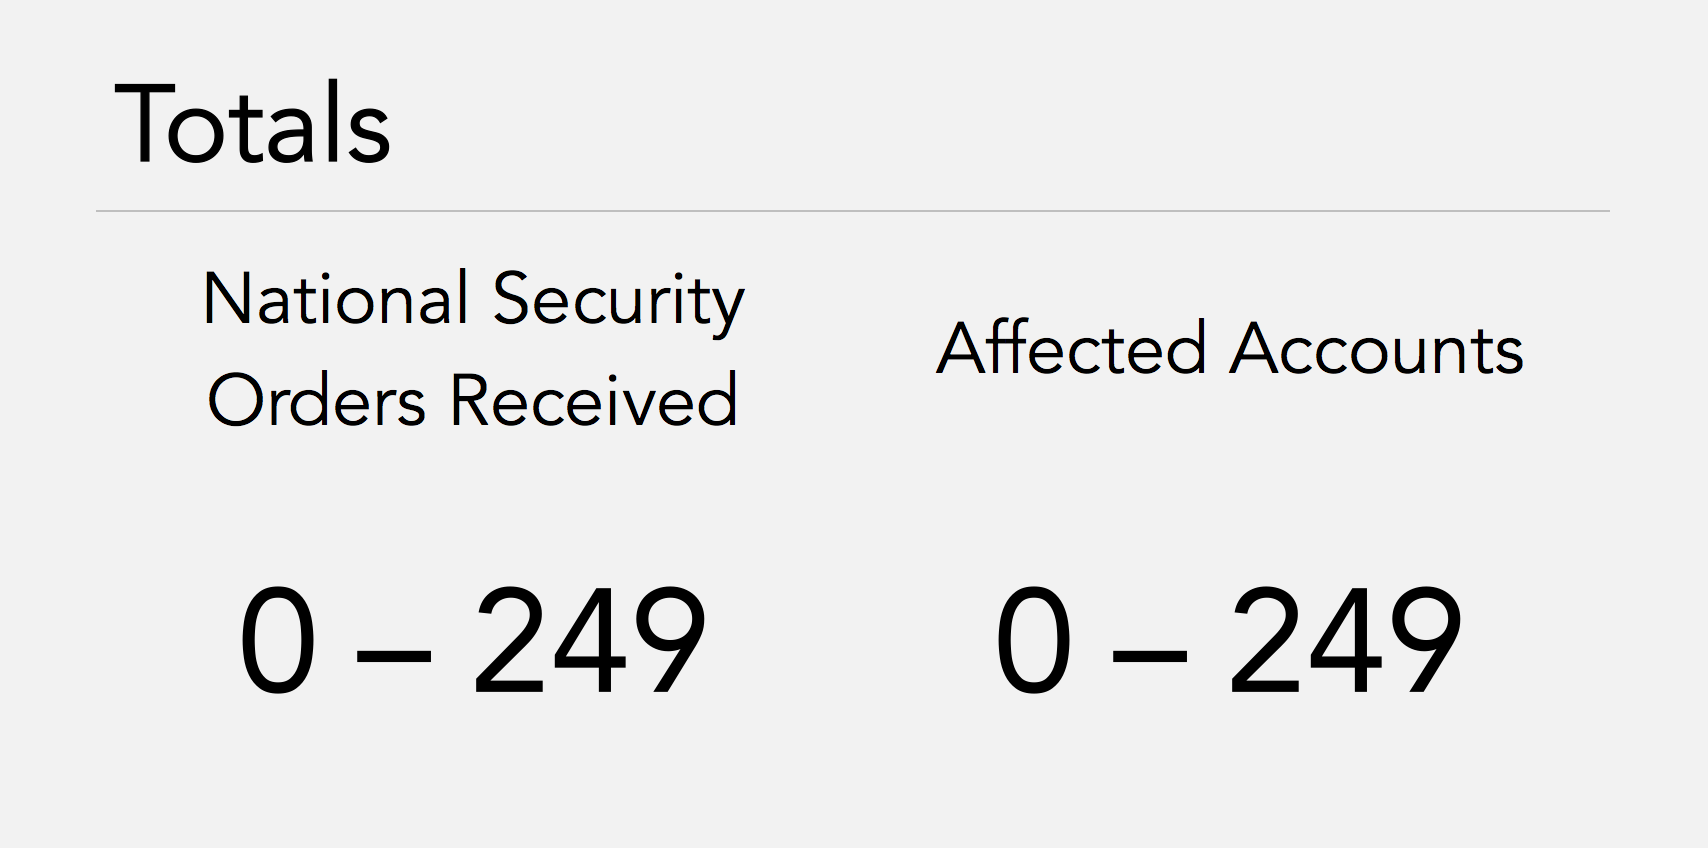 Total National Security Orders Received: 0 to 249.   Total Number of Accounts Affected: 0 to 249.